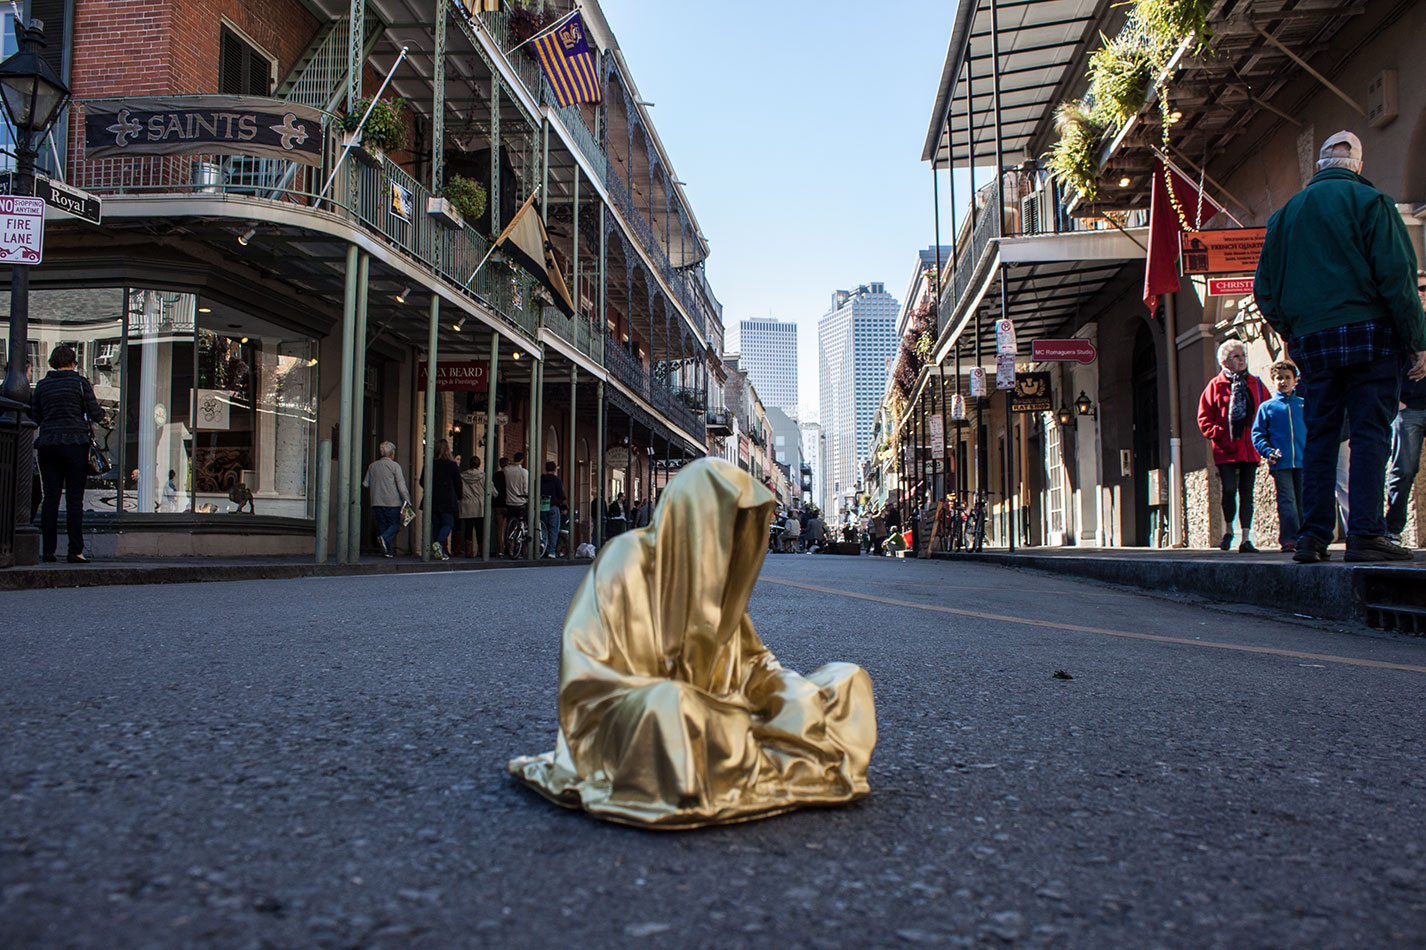 public-art-show-New-Orleans-Louisiana-usa-guardians-of-time-manfred-kili-kielnhofer-contemporary-fine-art-modern-arts-design-antiques-sculpture-5405